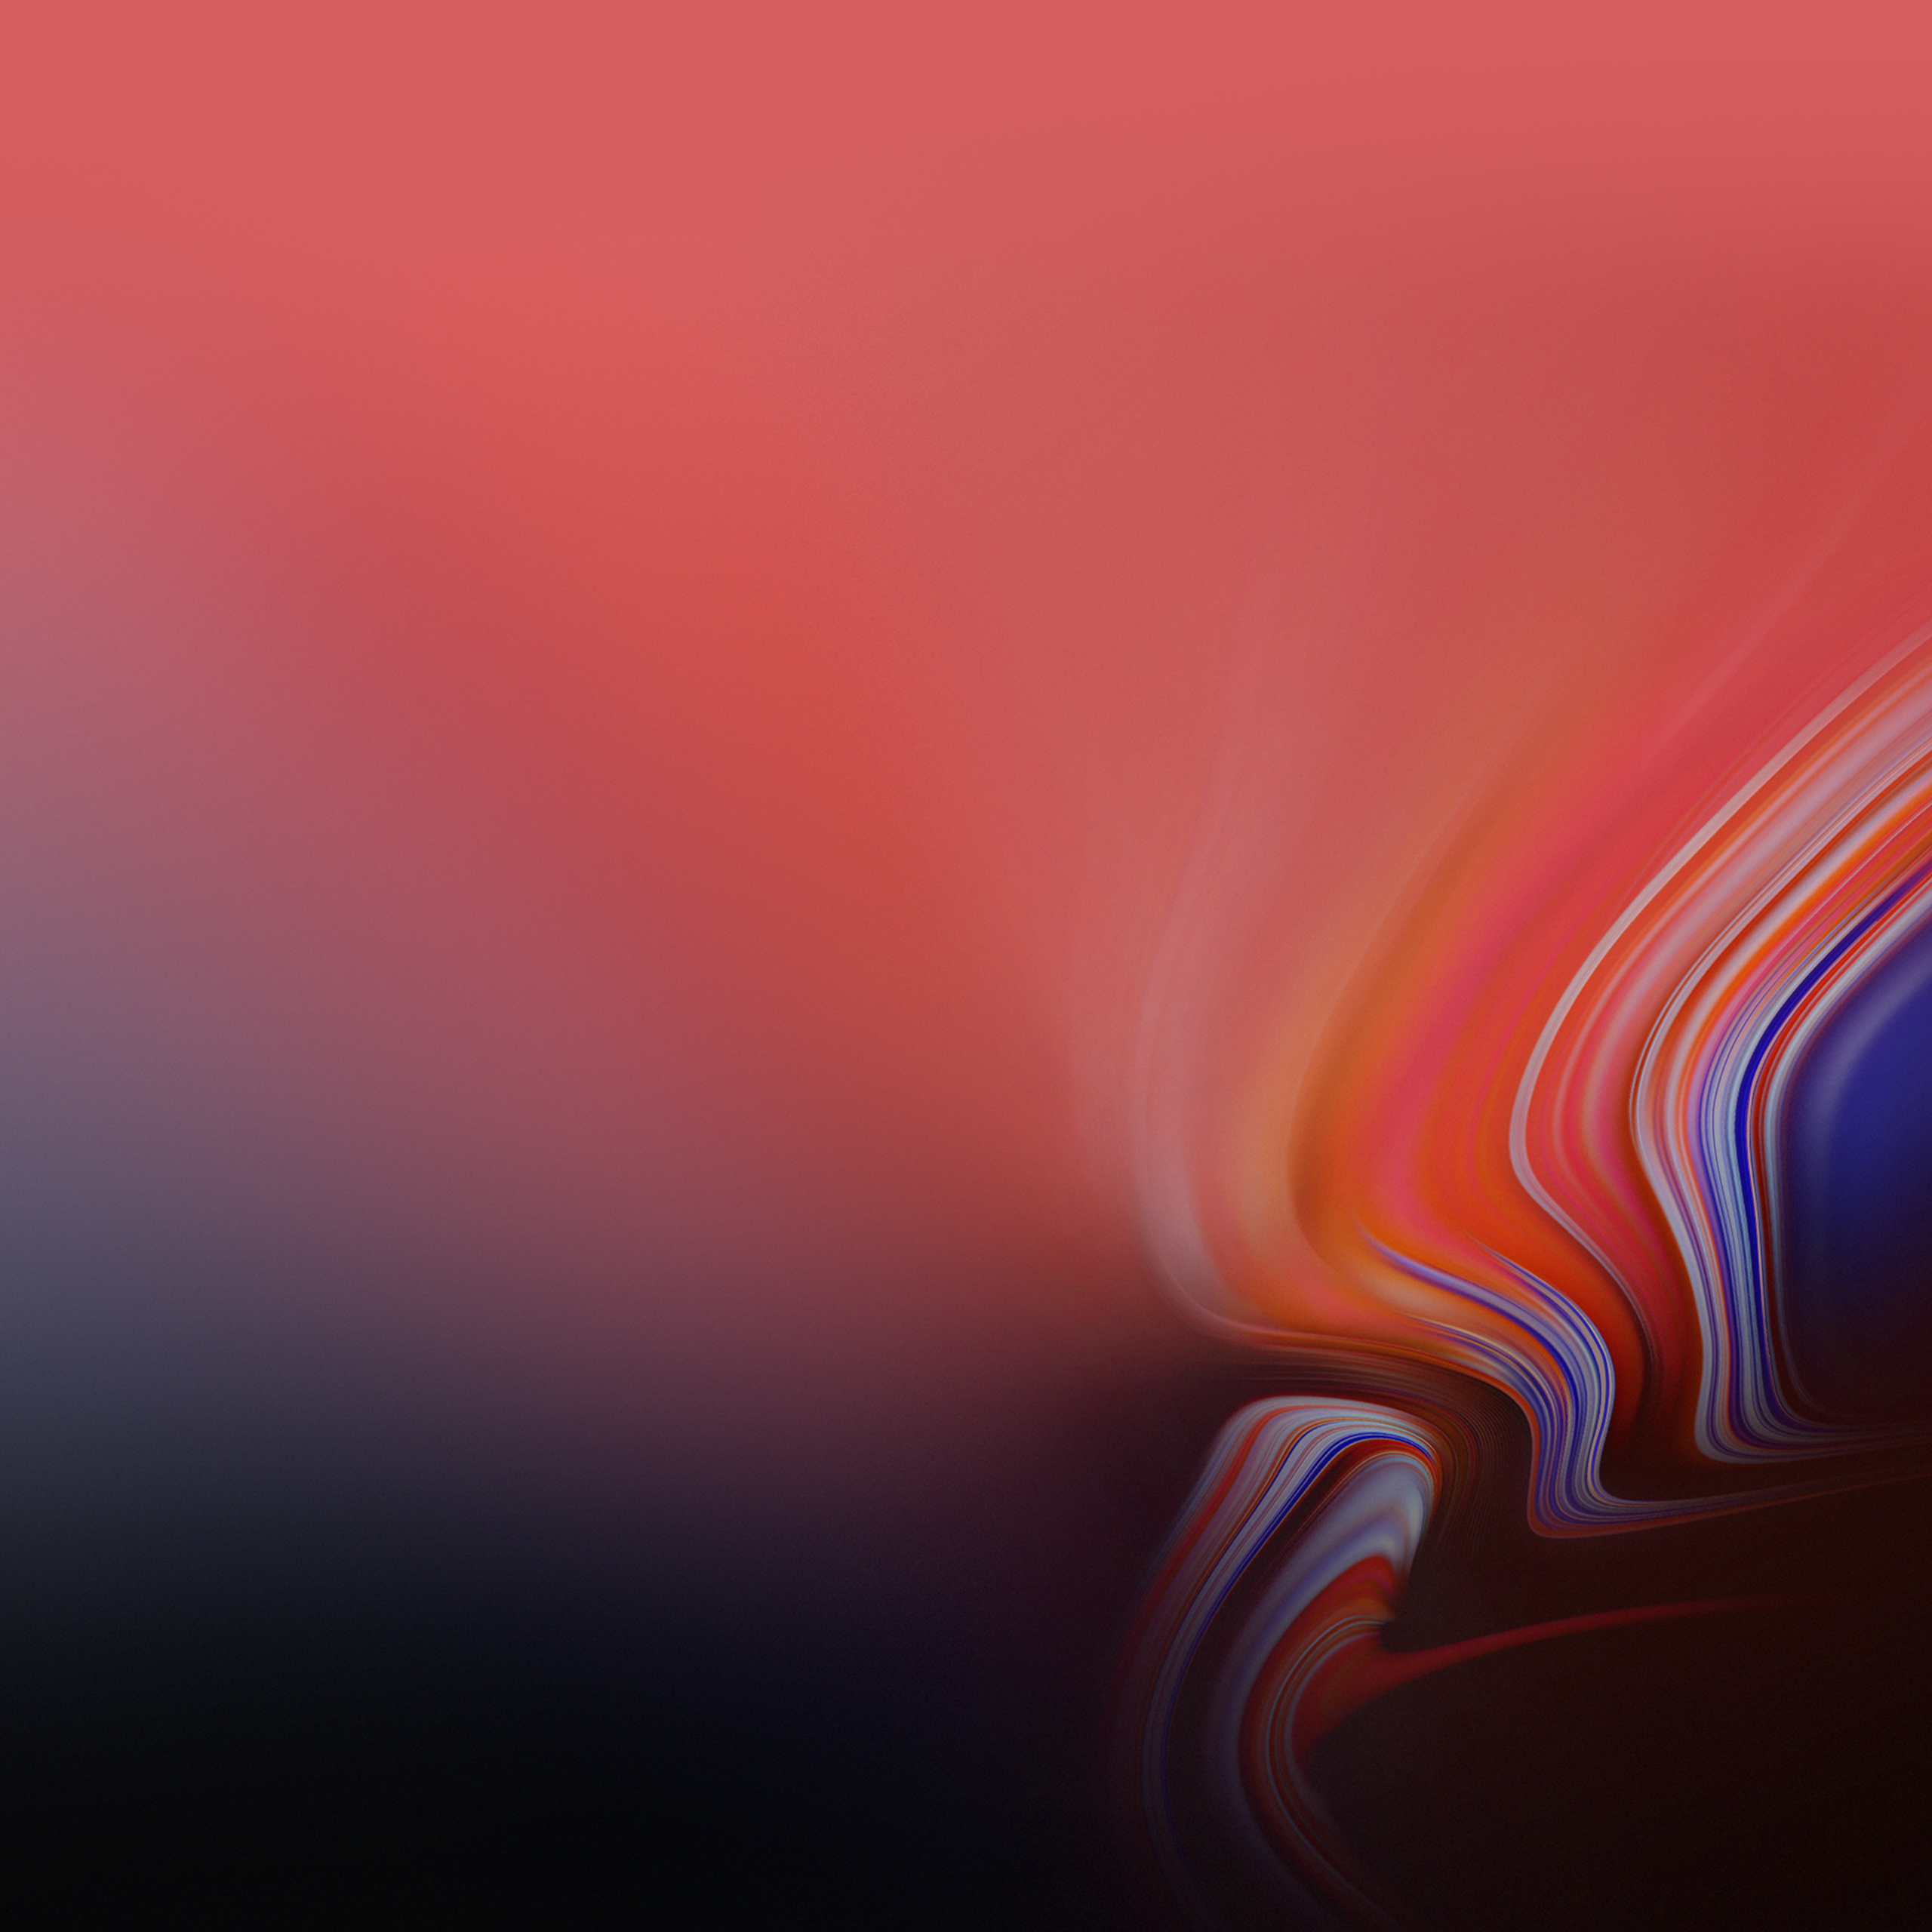 Hd Wallpapers For Samsung Tablet Posted By John Anderson